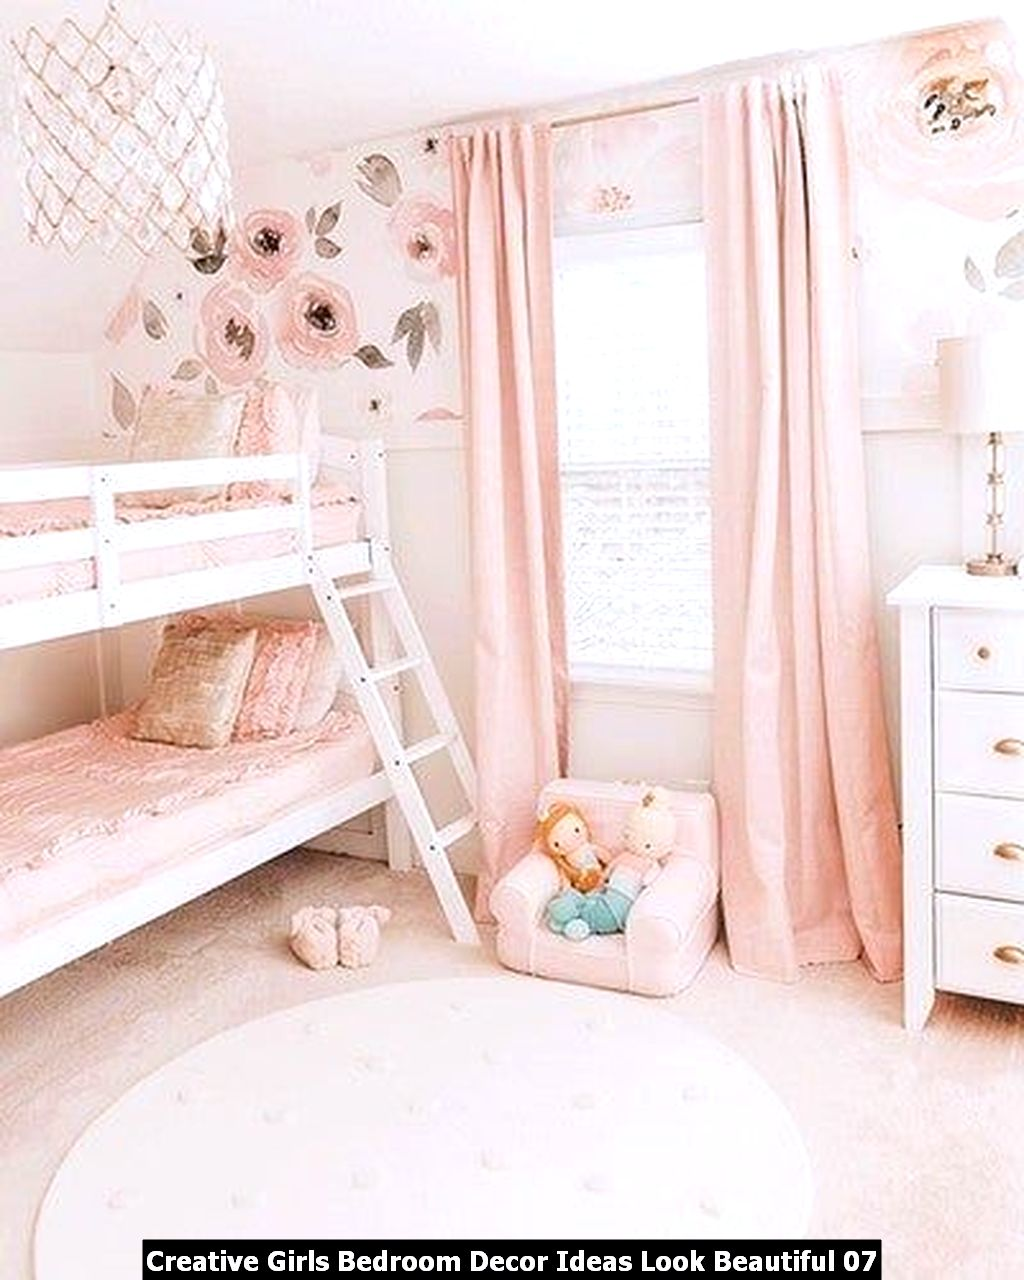 Creative Girls Bedroom Decor Ideas Look Beautiful 07